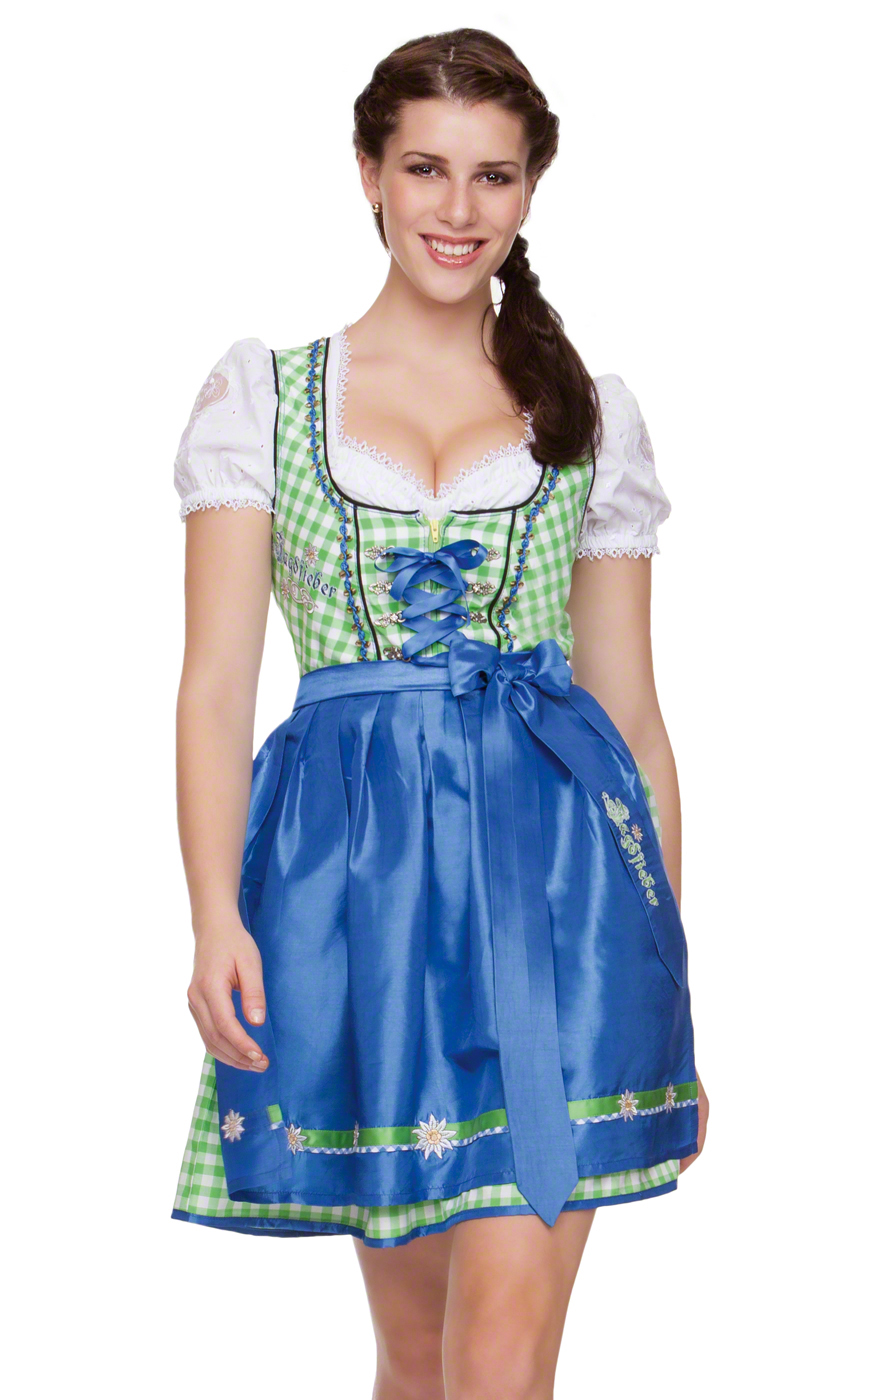 Radical changes in Oktoberfest colour trends - Oktoberfest ...